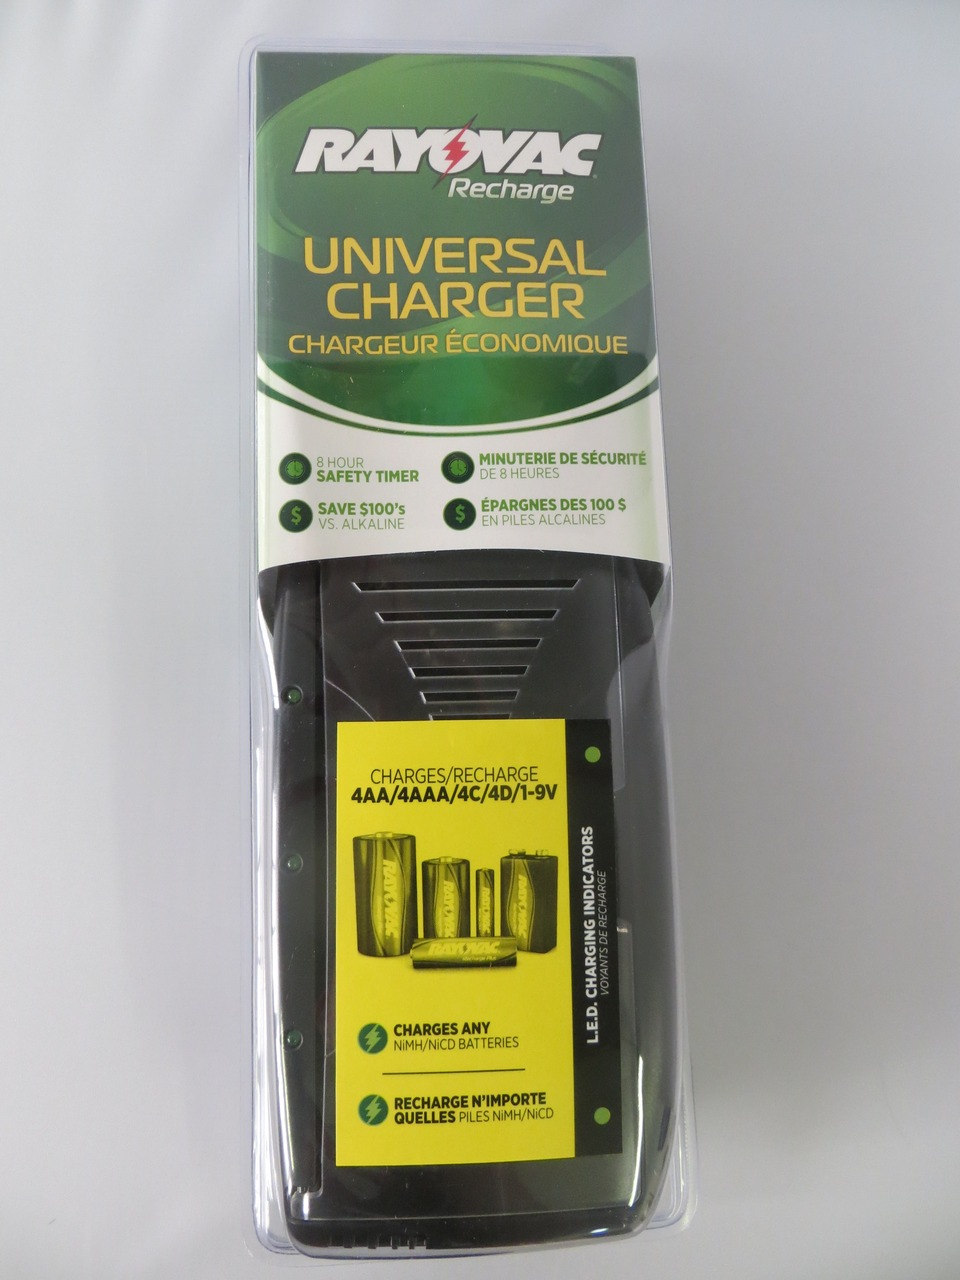 Rayovac PS202 Battery Charger For AA  AAA  C  D And  9V NIMH And NICD Batteries + FREE SHIPPING